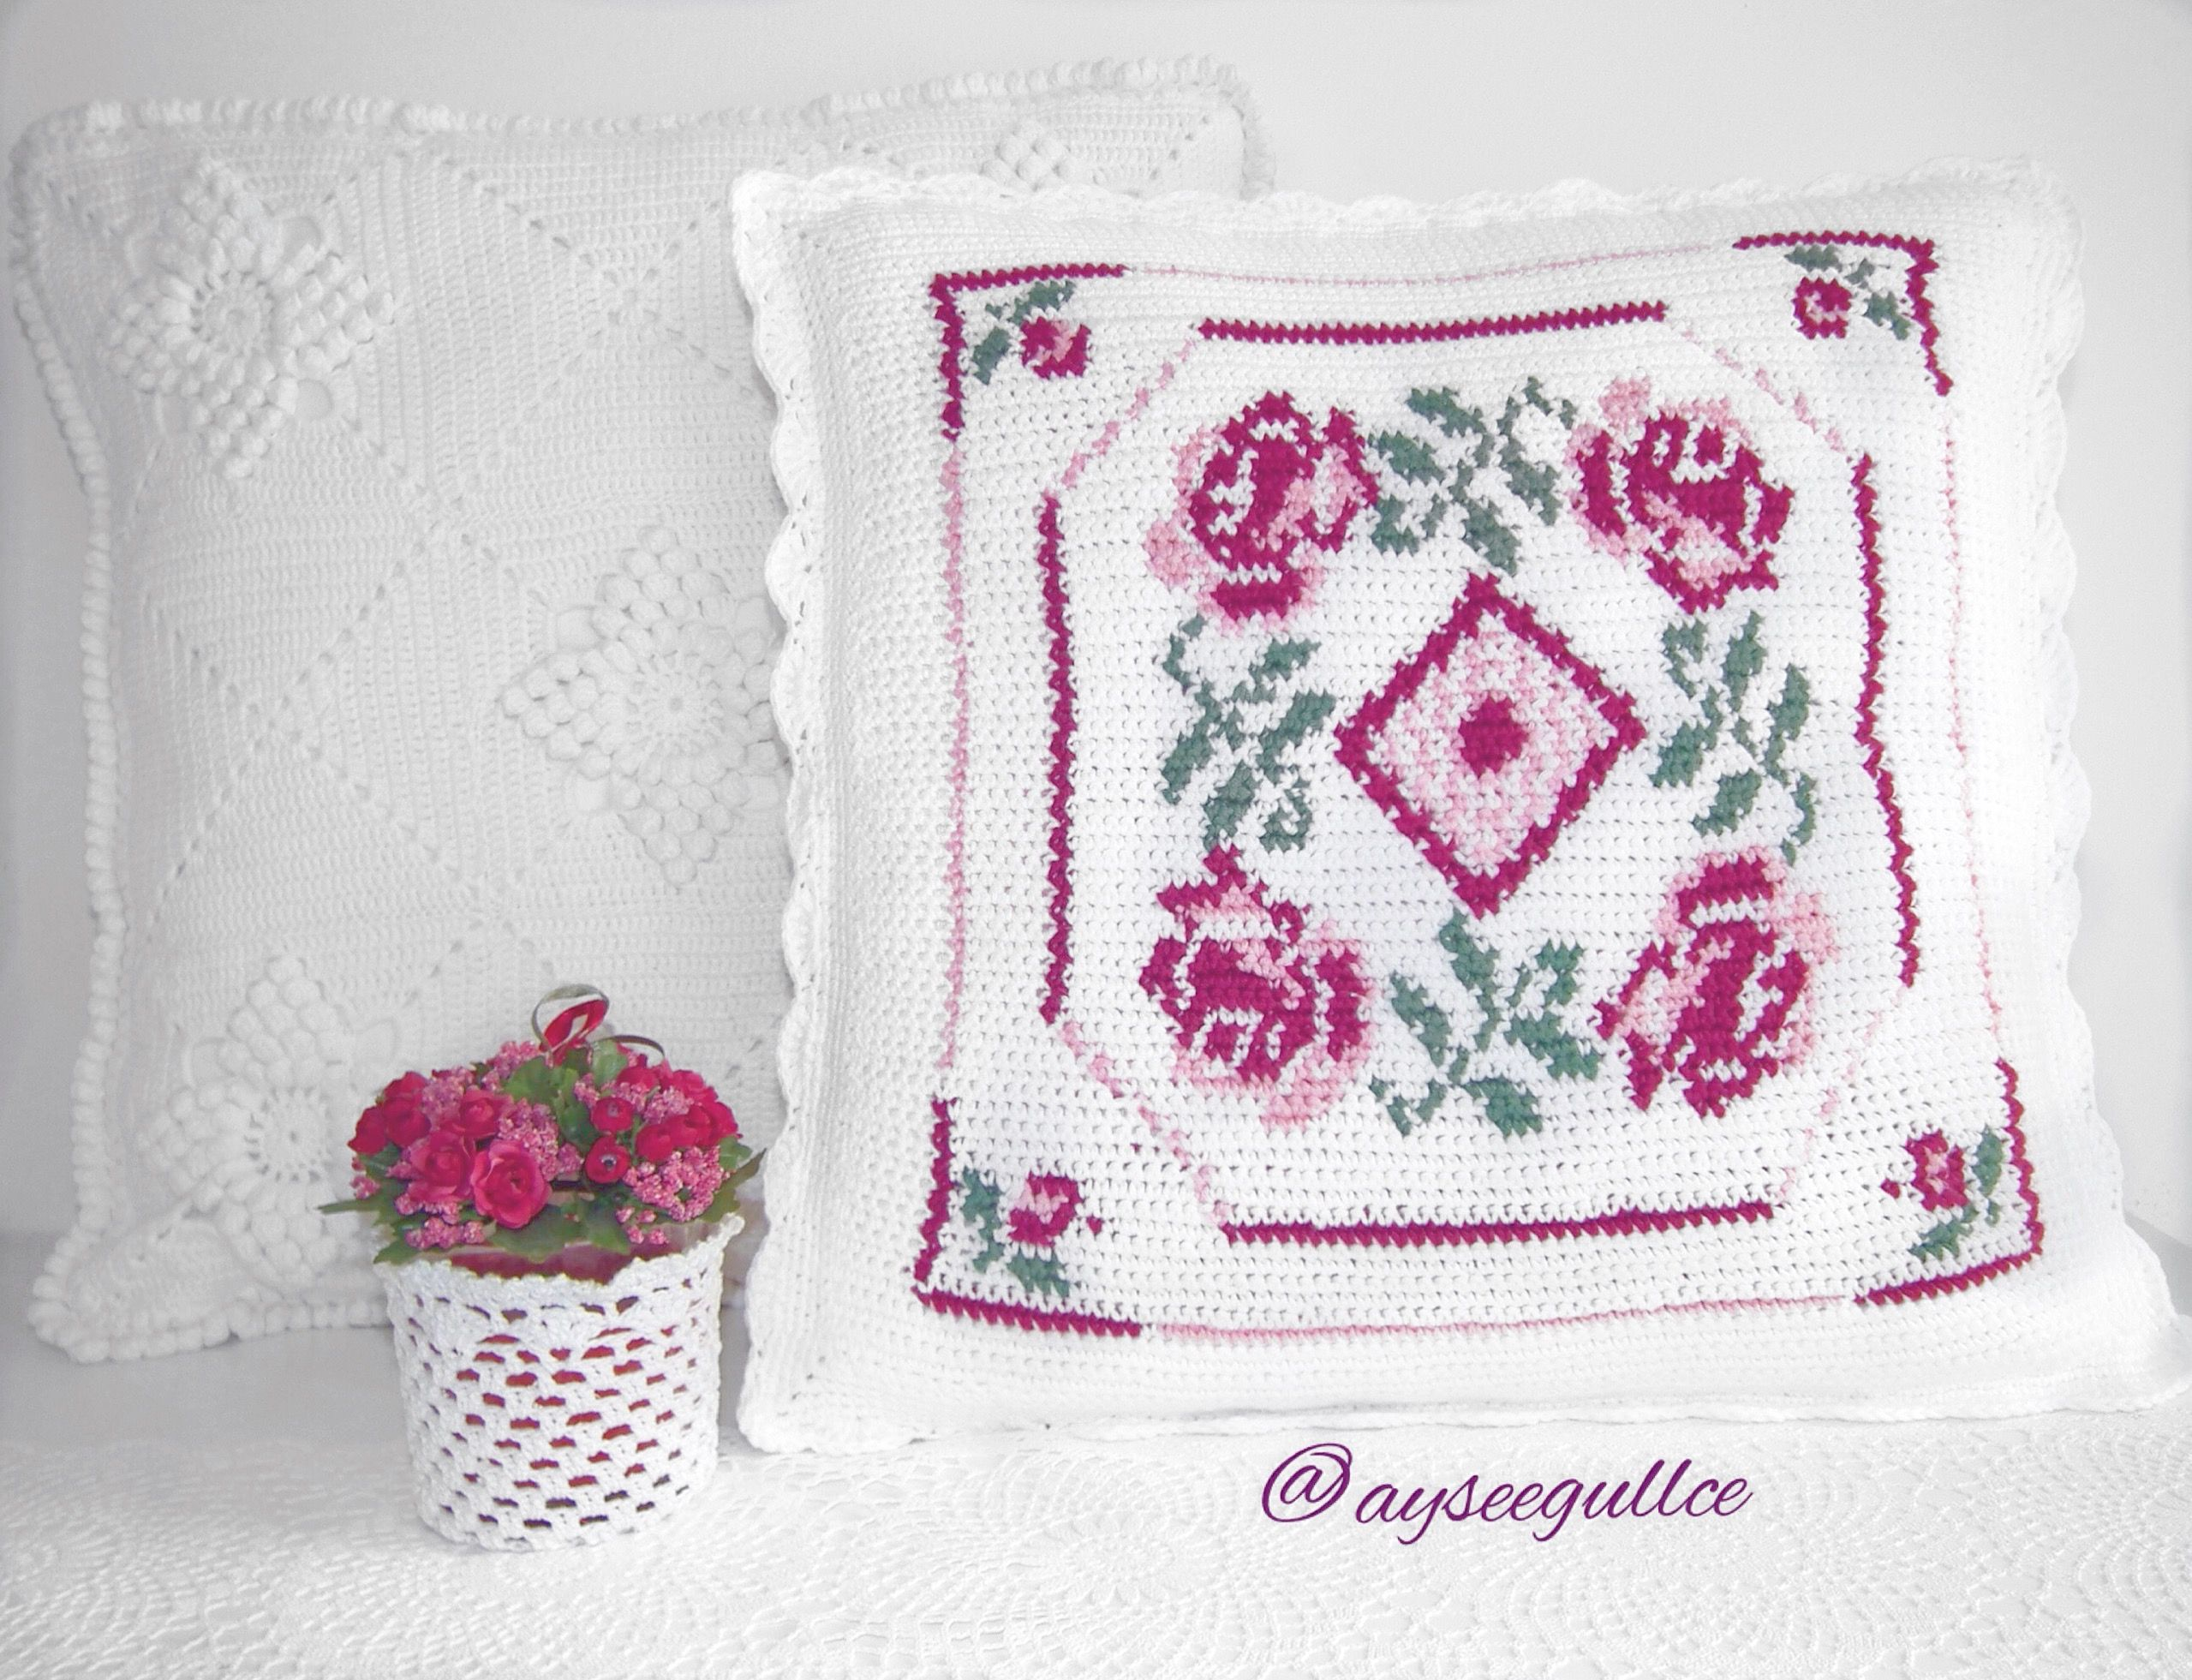 Pin by olcay Özcan on orguler pinterest crossstitch